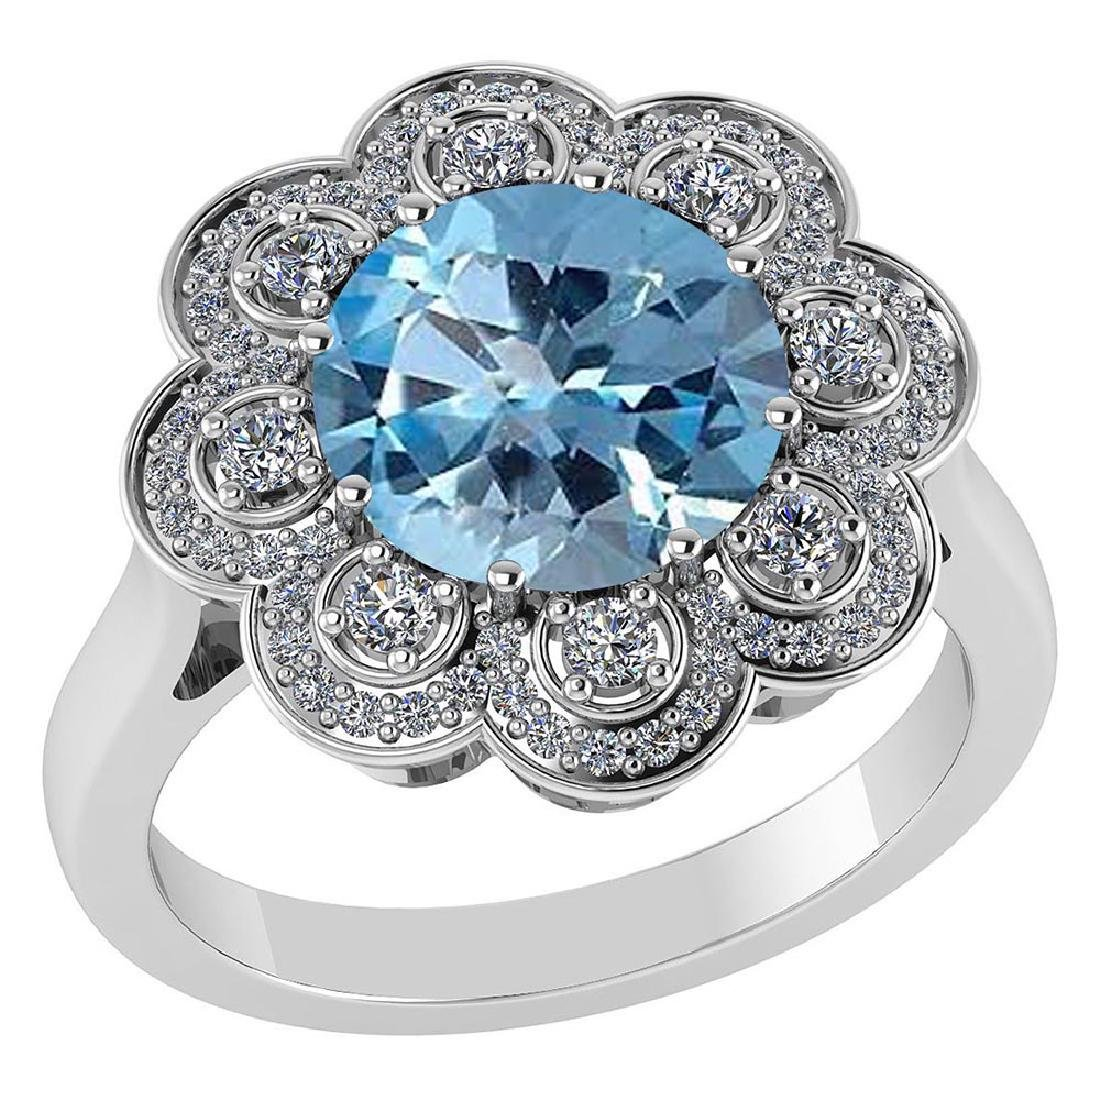 Certified 4.42 CTW Genuine Aquamarine And Diamond 14K W